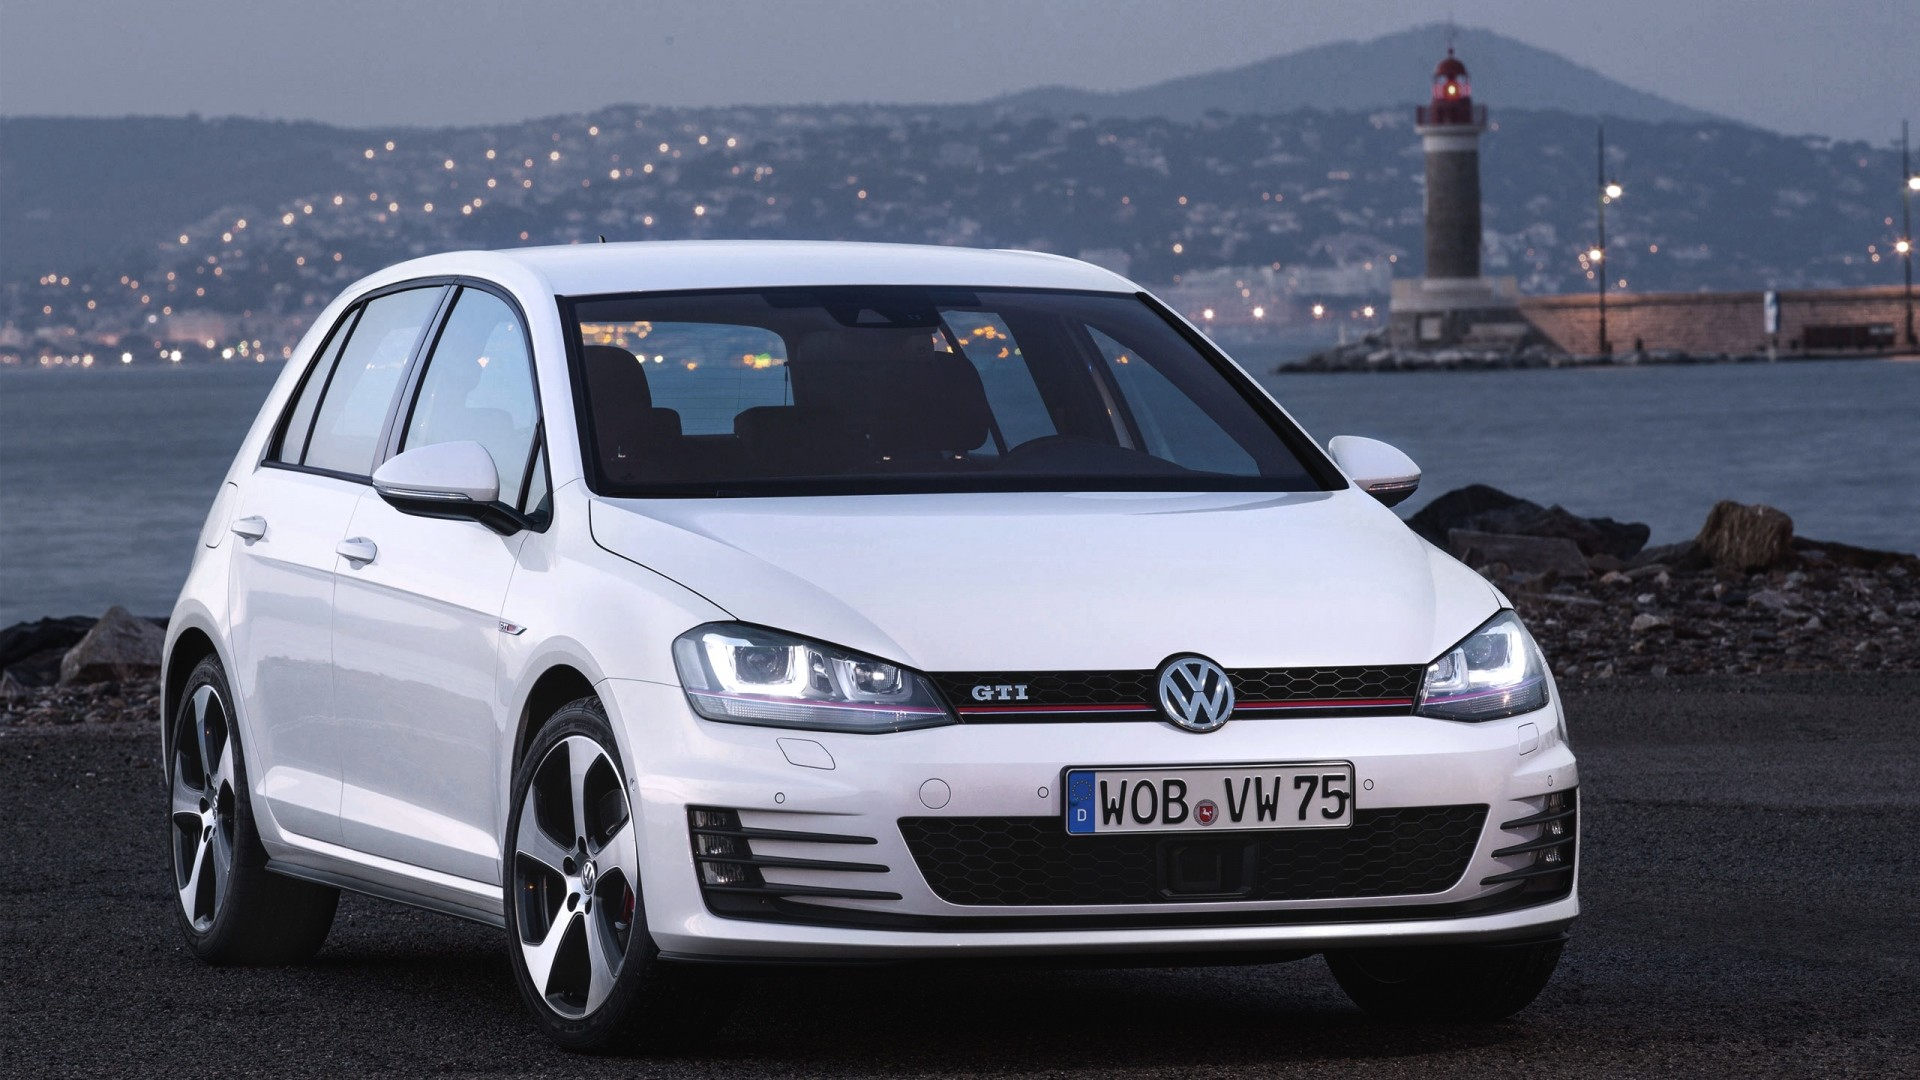 Volkswagen Golf Gti Performance Edition 2017 M1 Jpg Source Iphone 5 Wallpaper Gadget And PC